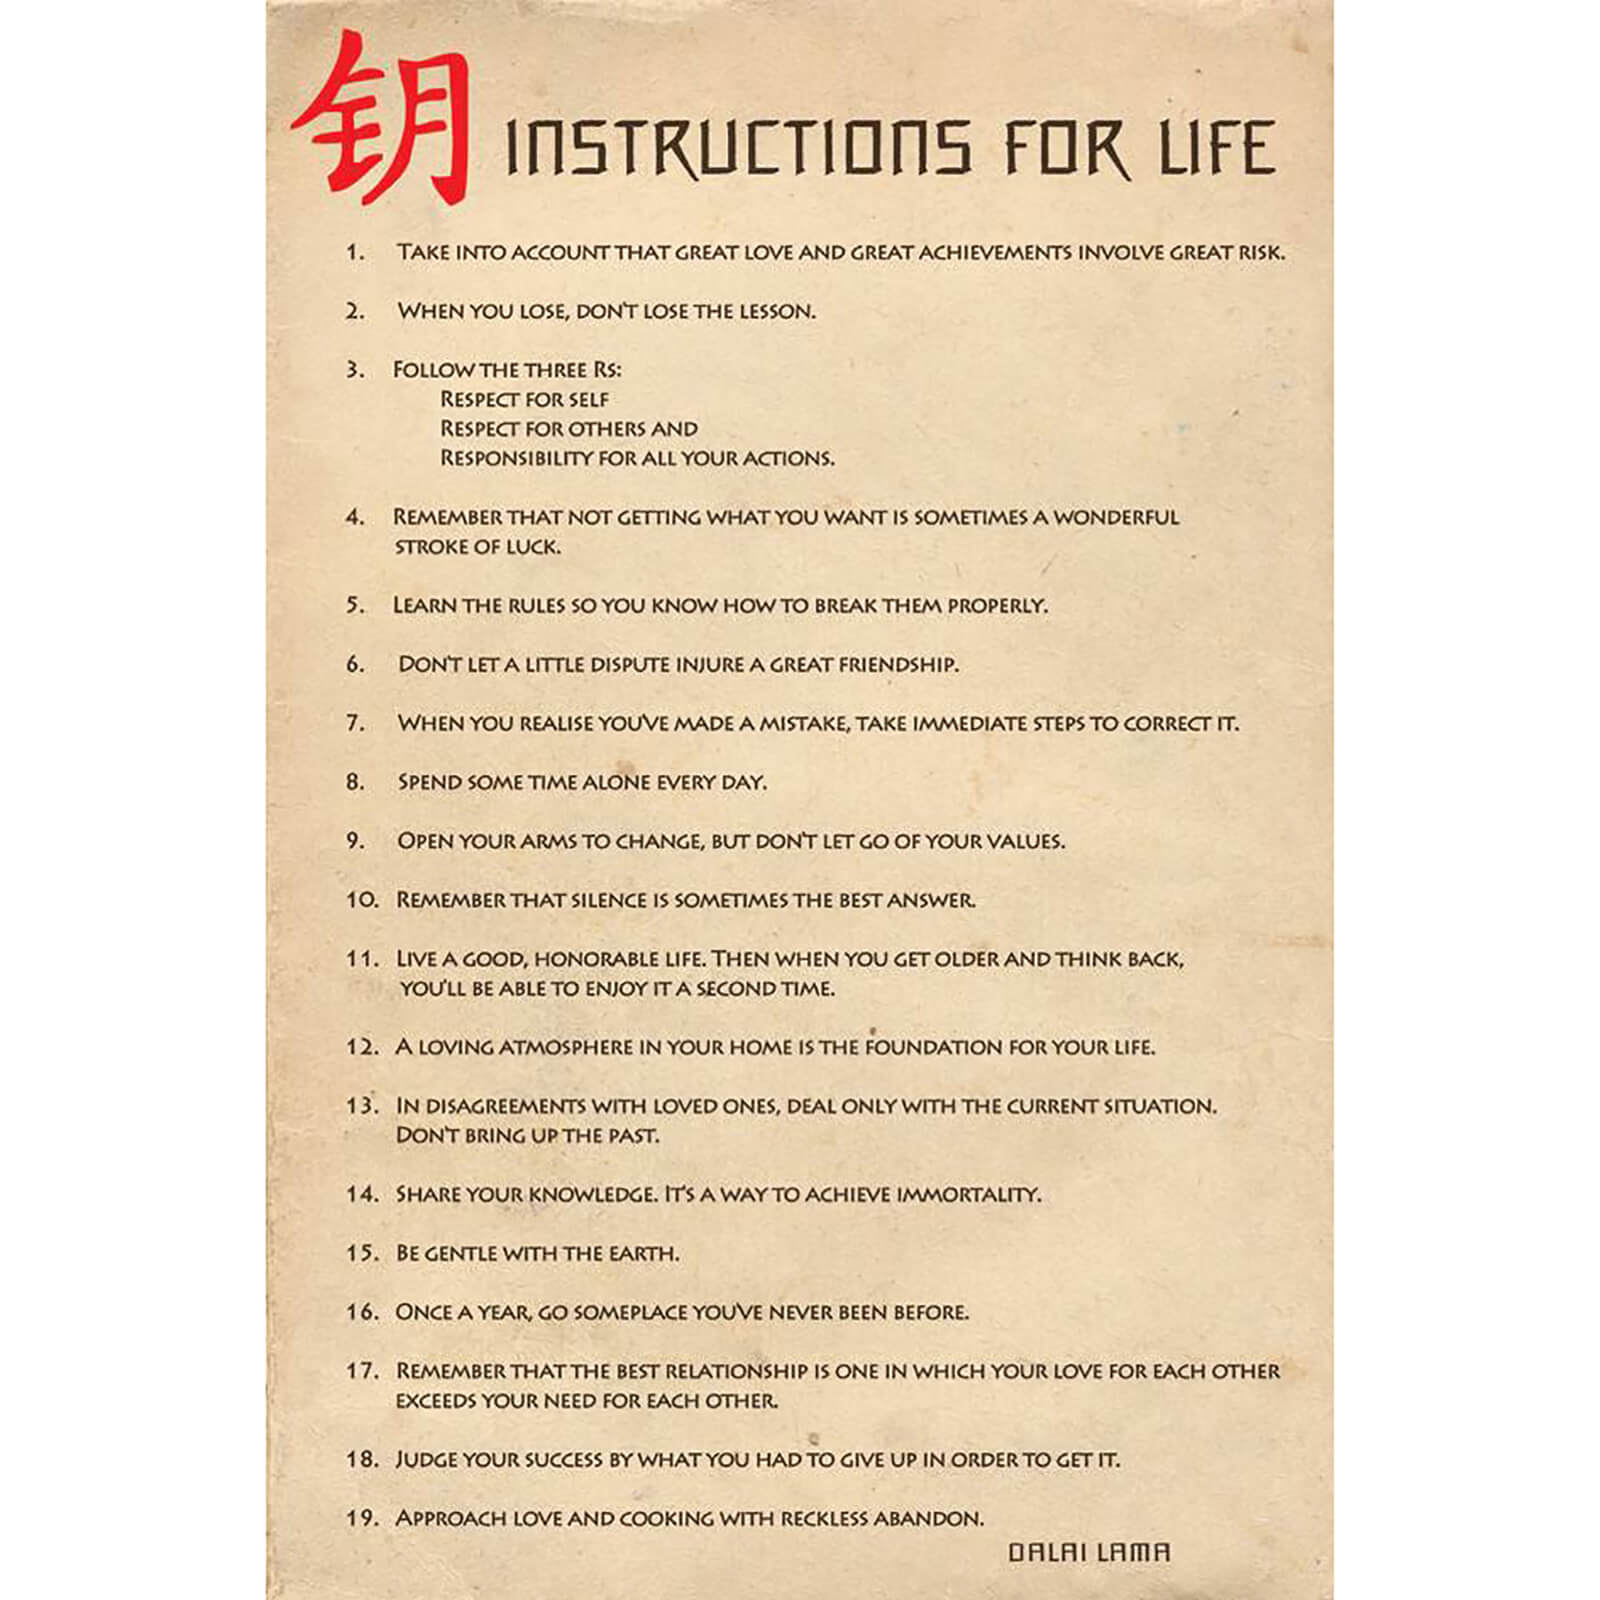 Instructions for Life - 61 x 91.5cm Maxi Poster